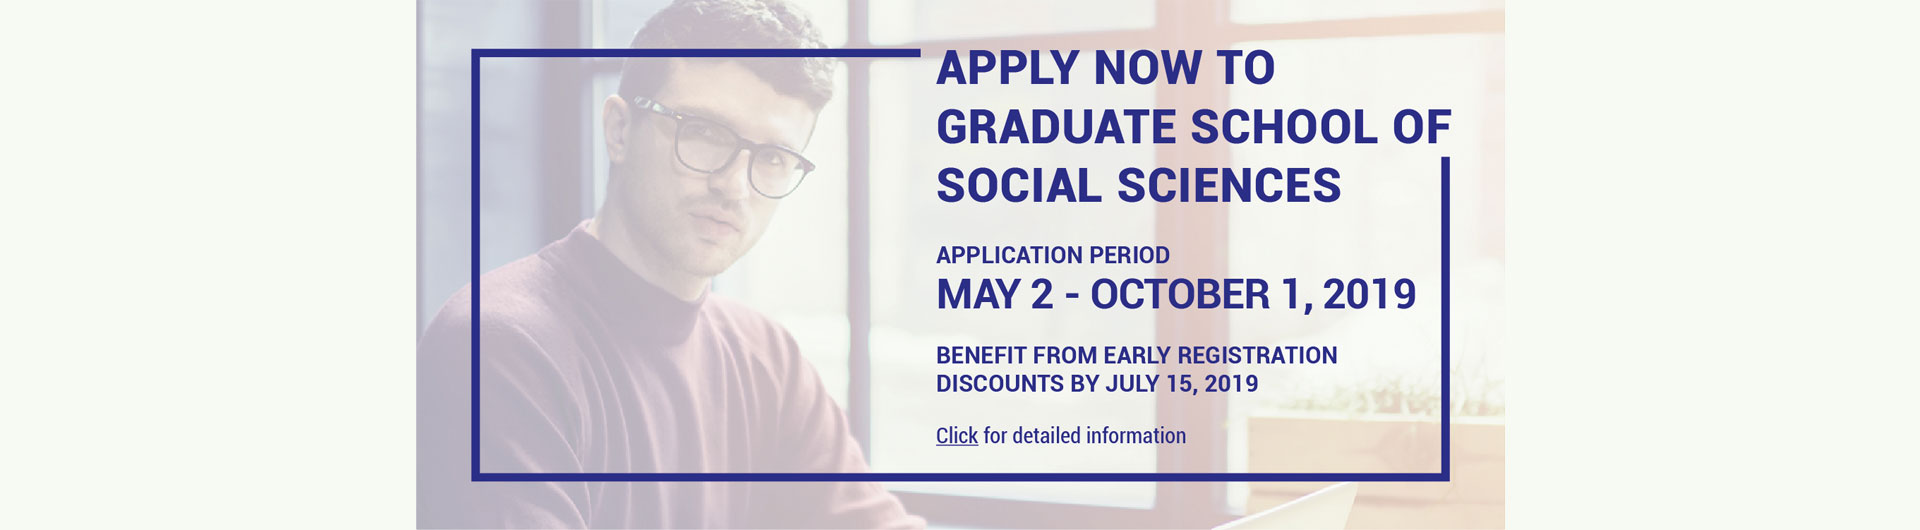 Apply Now to Graduate School of Social Sciences